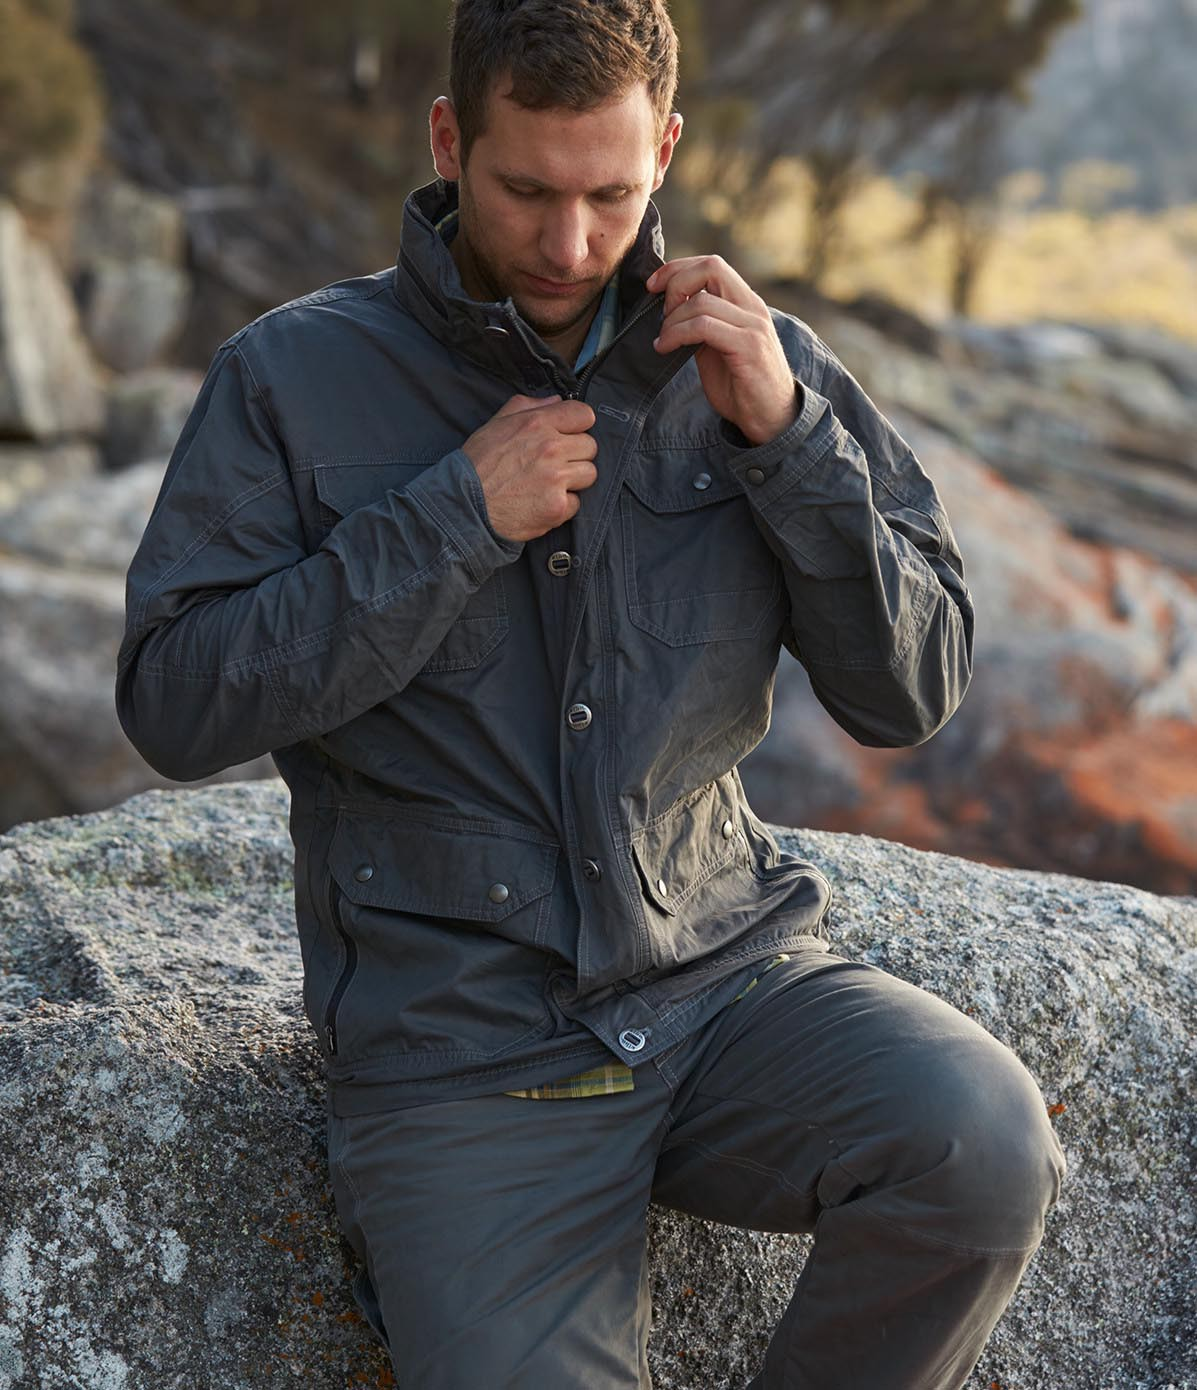 KÜHL's Distinctive Men's Outerwear